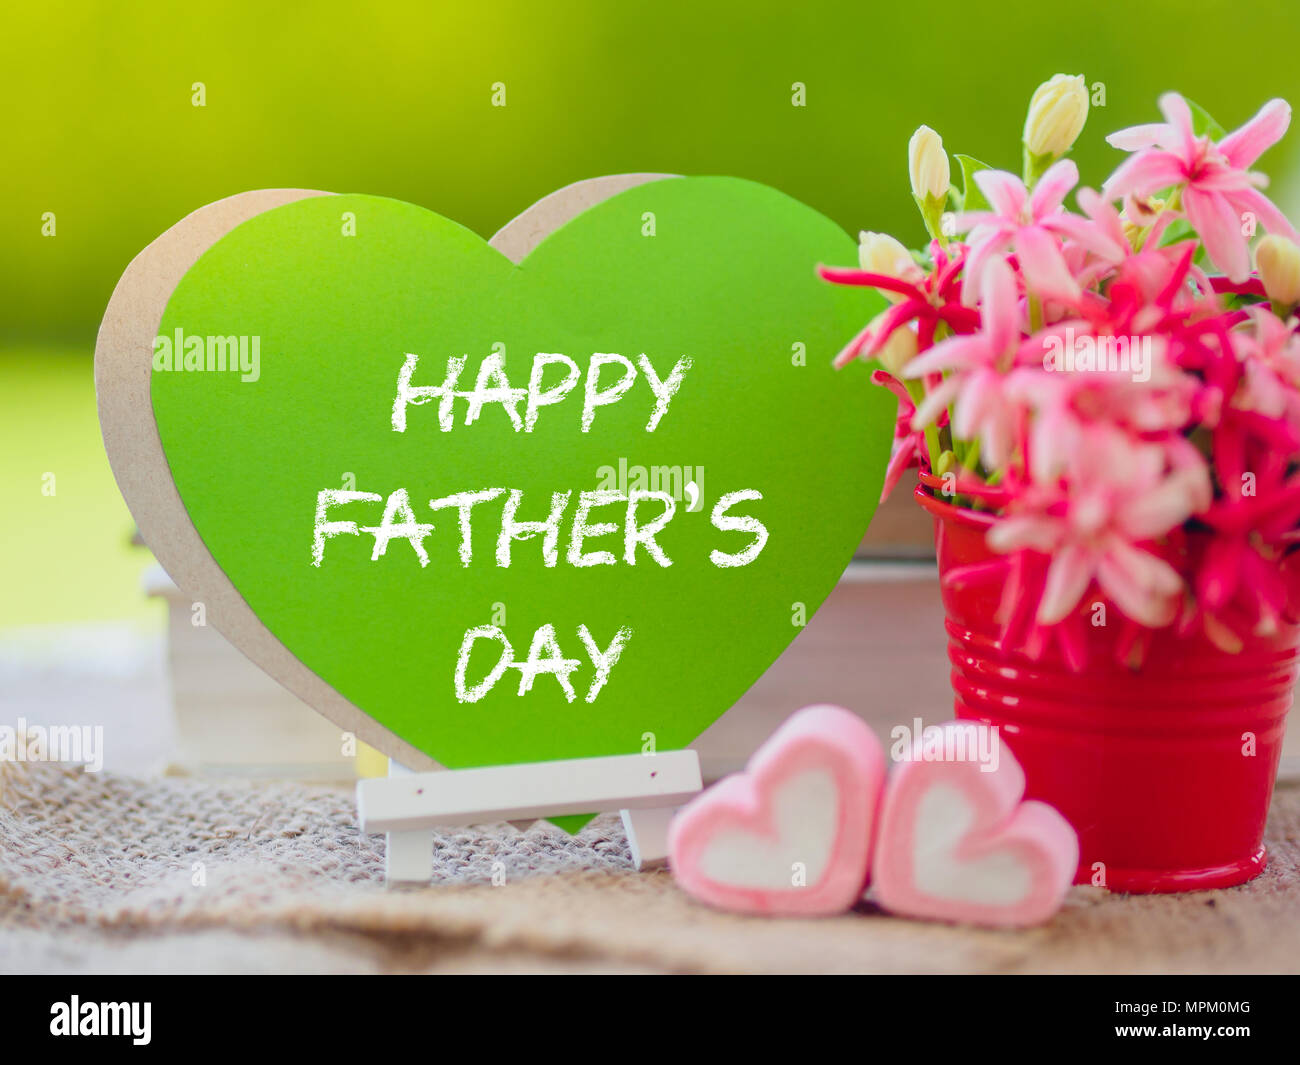 Buy Flower day Fathers pictures pictures trends